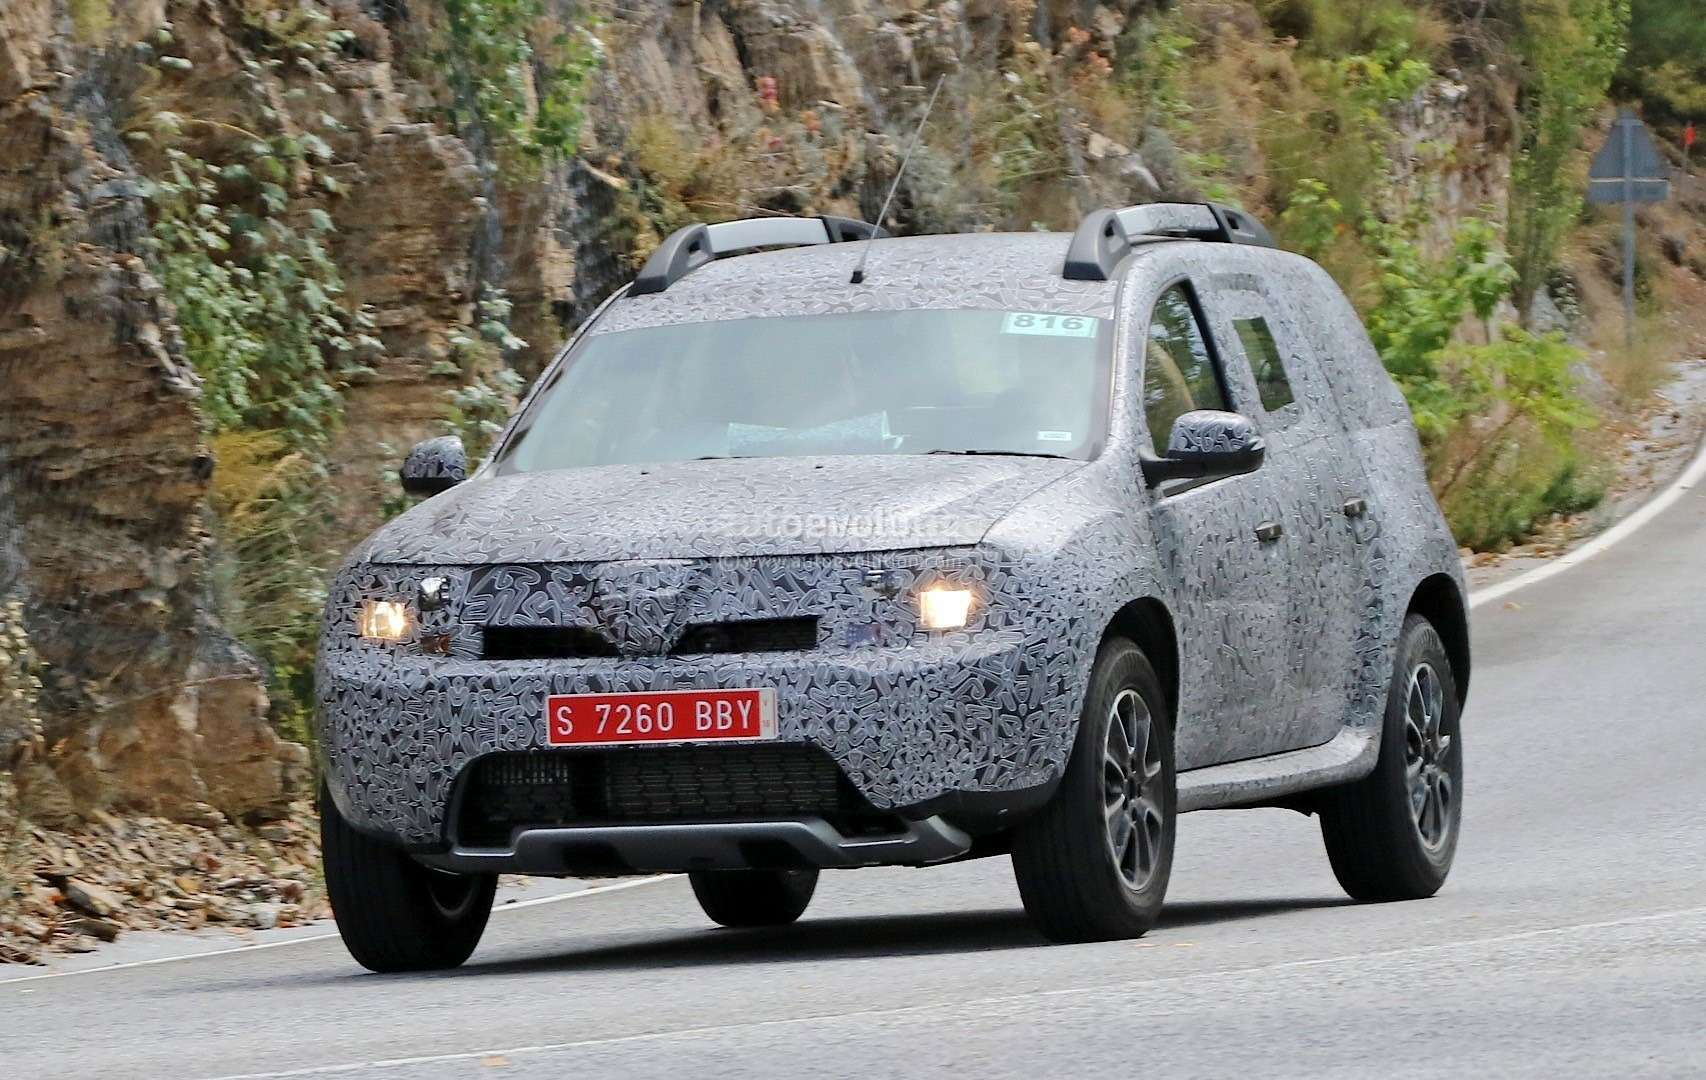 all-new-dacia-duster-caught-in-first-spyshots-plus-dacia-novelties-for-frankfurt-photo-gallery_3